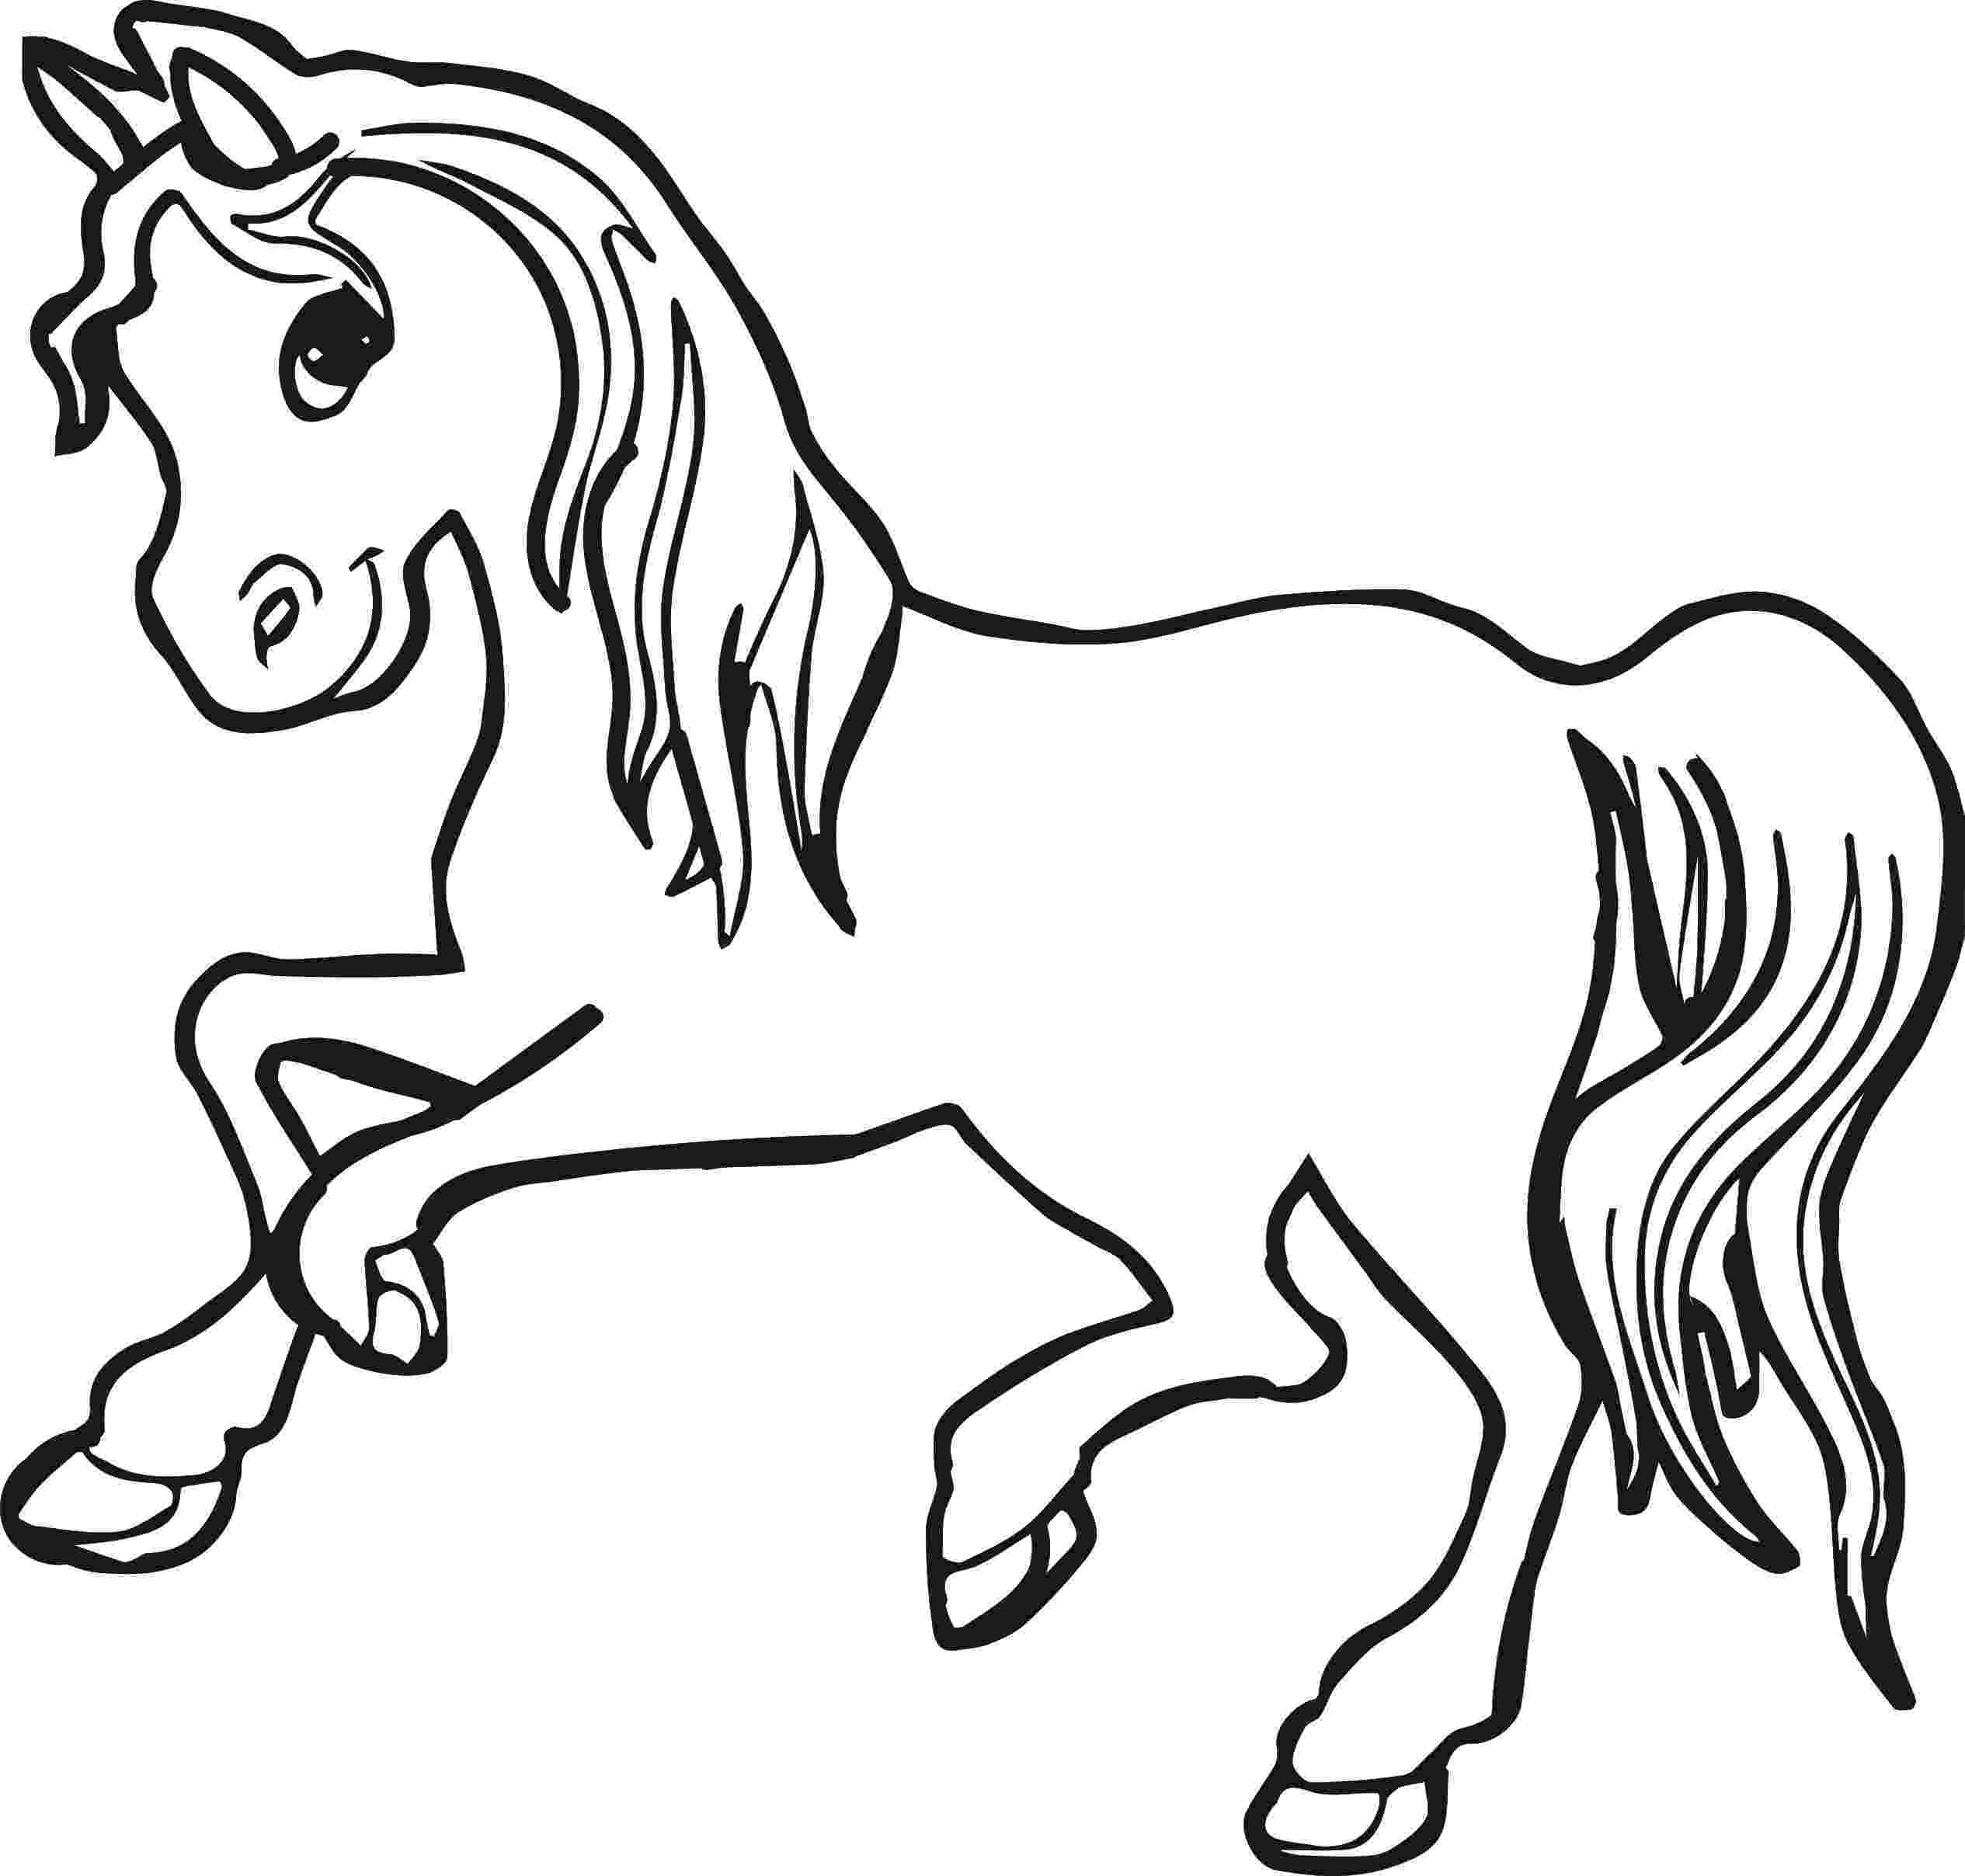 colouring pages horses 30 best horse coloring pages ideas we need fun horses colouring pages